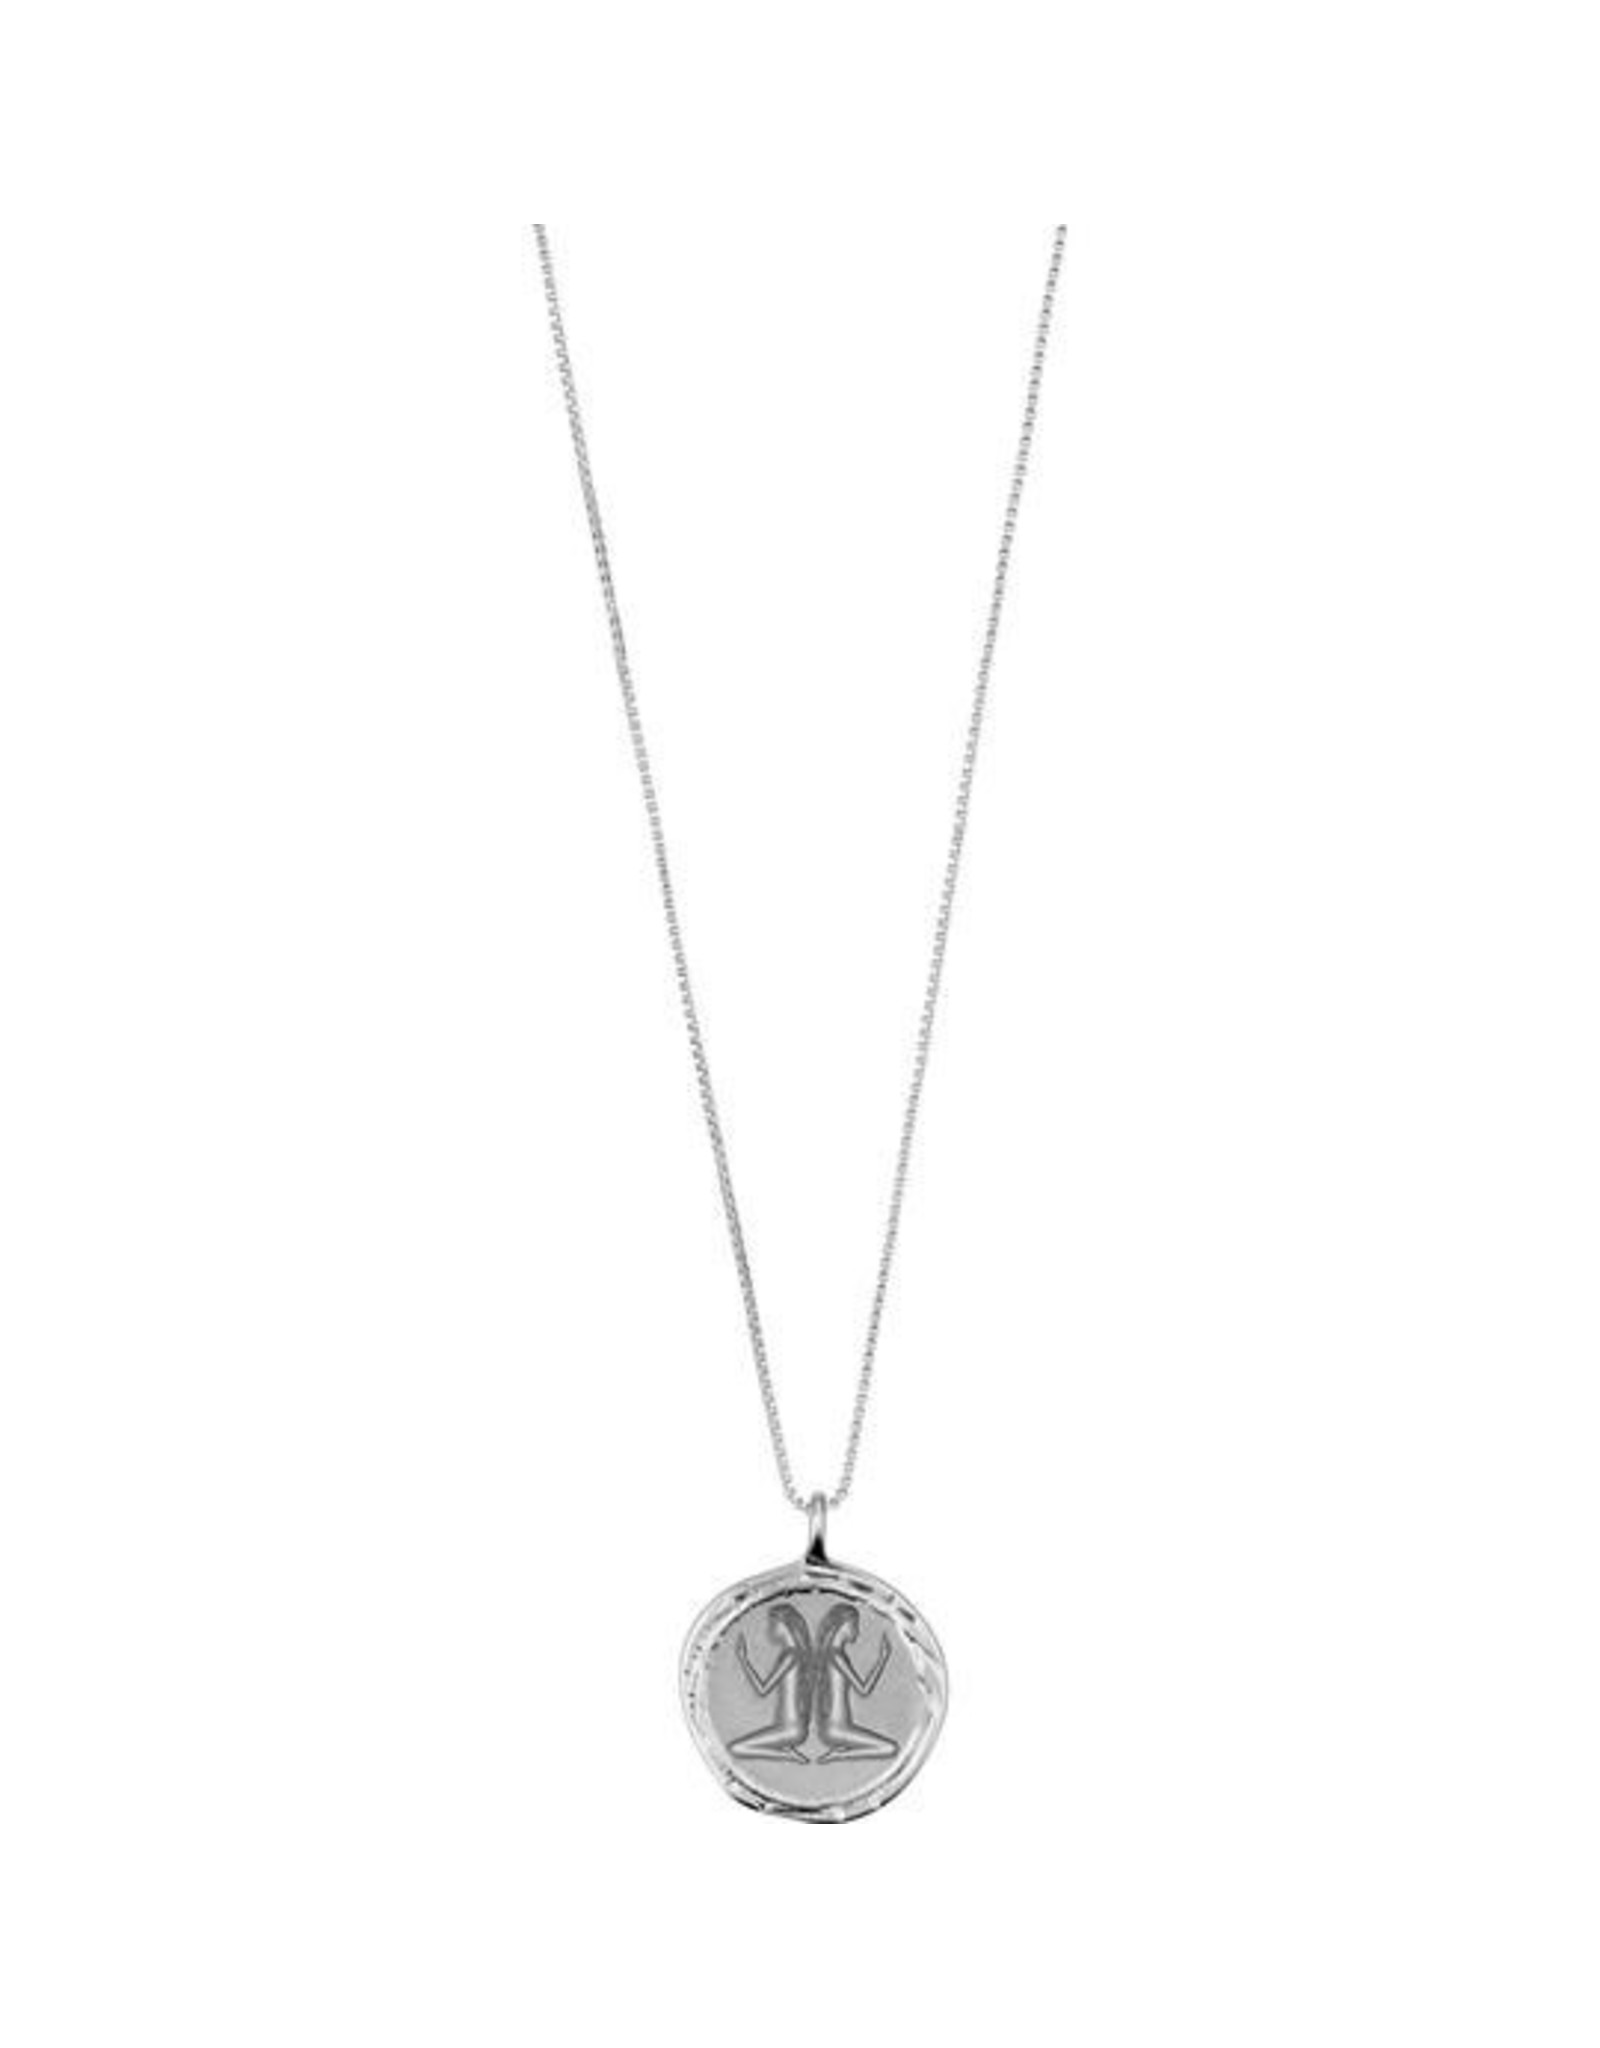 Pilgrim Necklace Gemini Zodiac Sign, Crystal, Silver